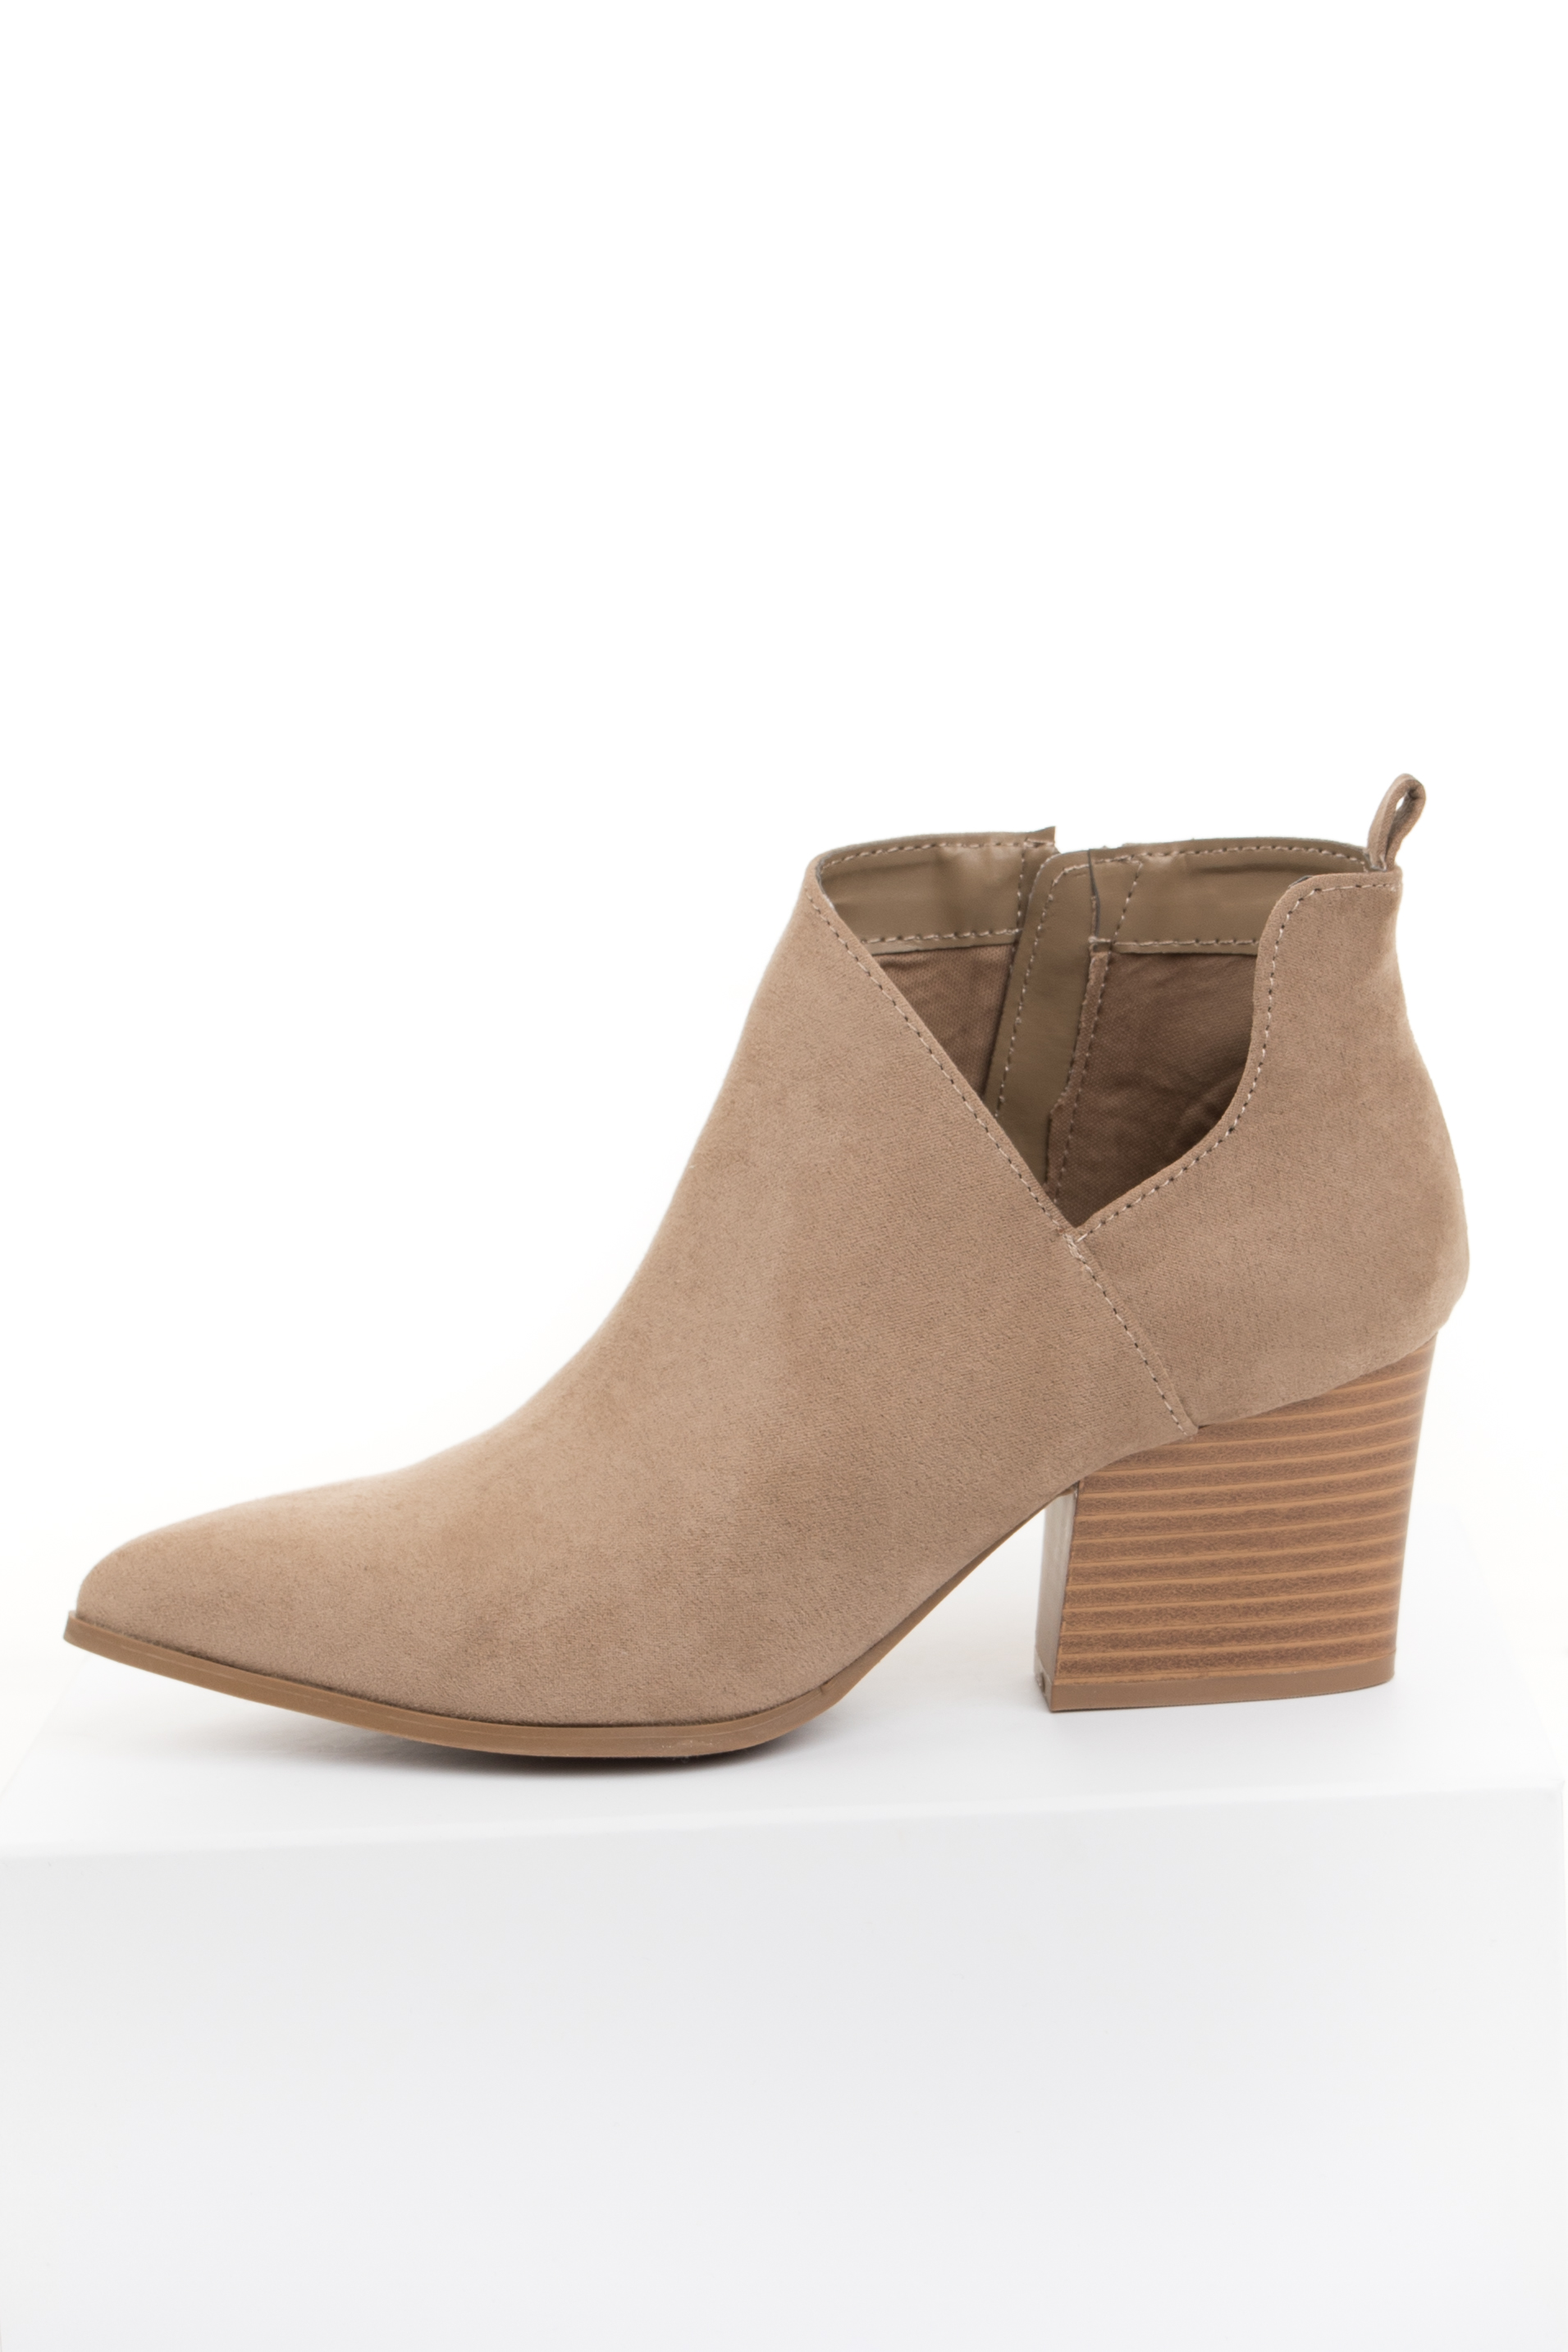 Taupe Faux Suede Pointed Toe Bootie with Cutout Detail